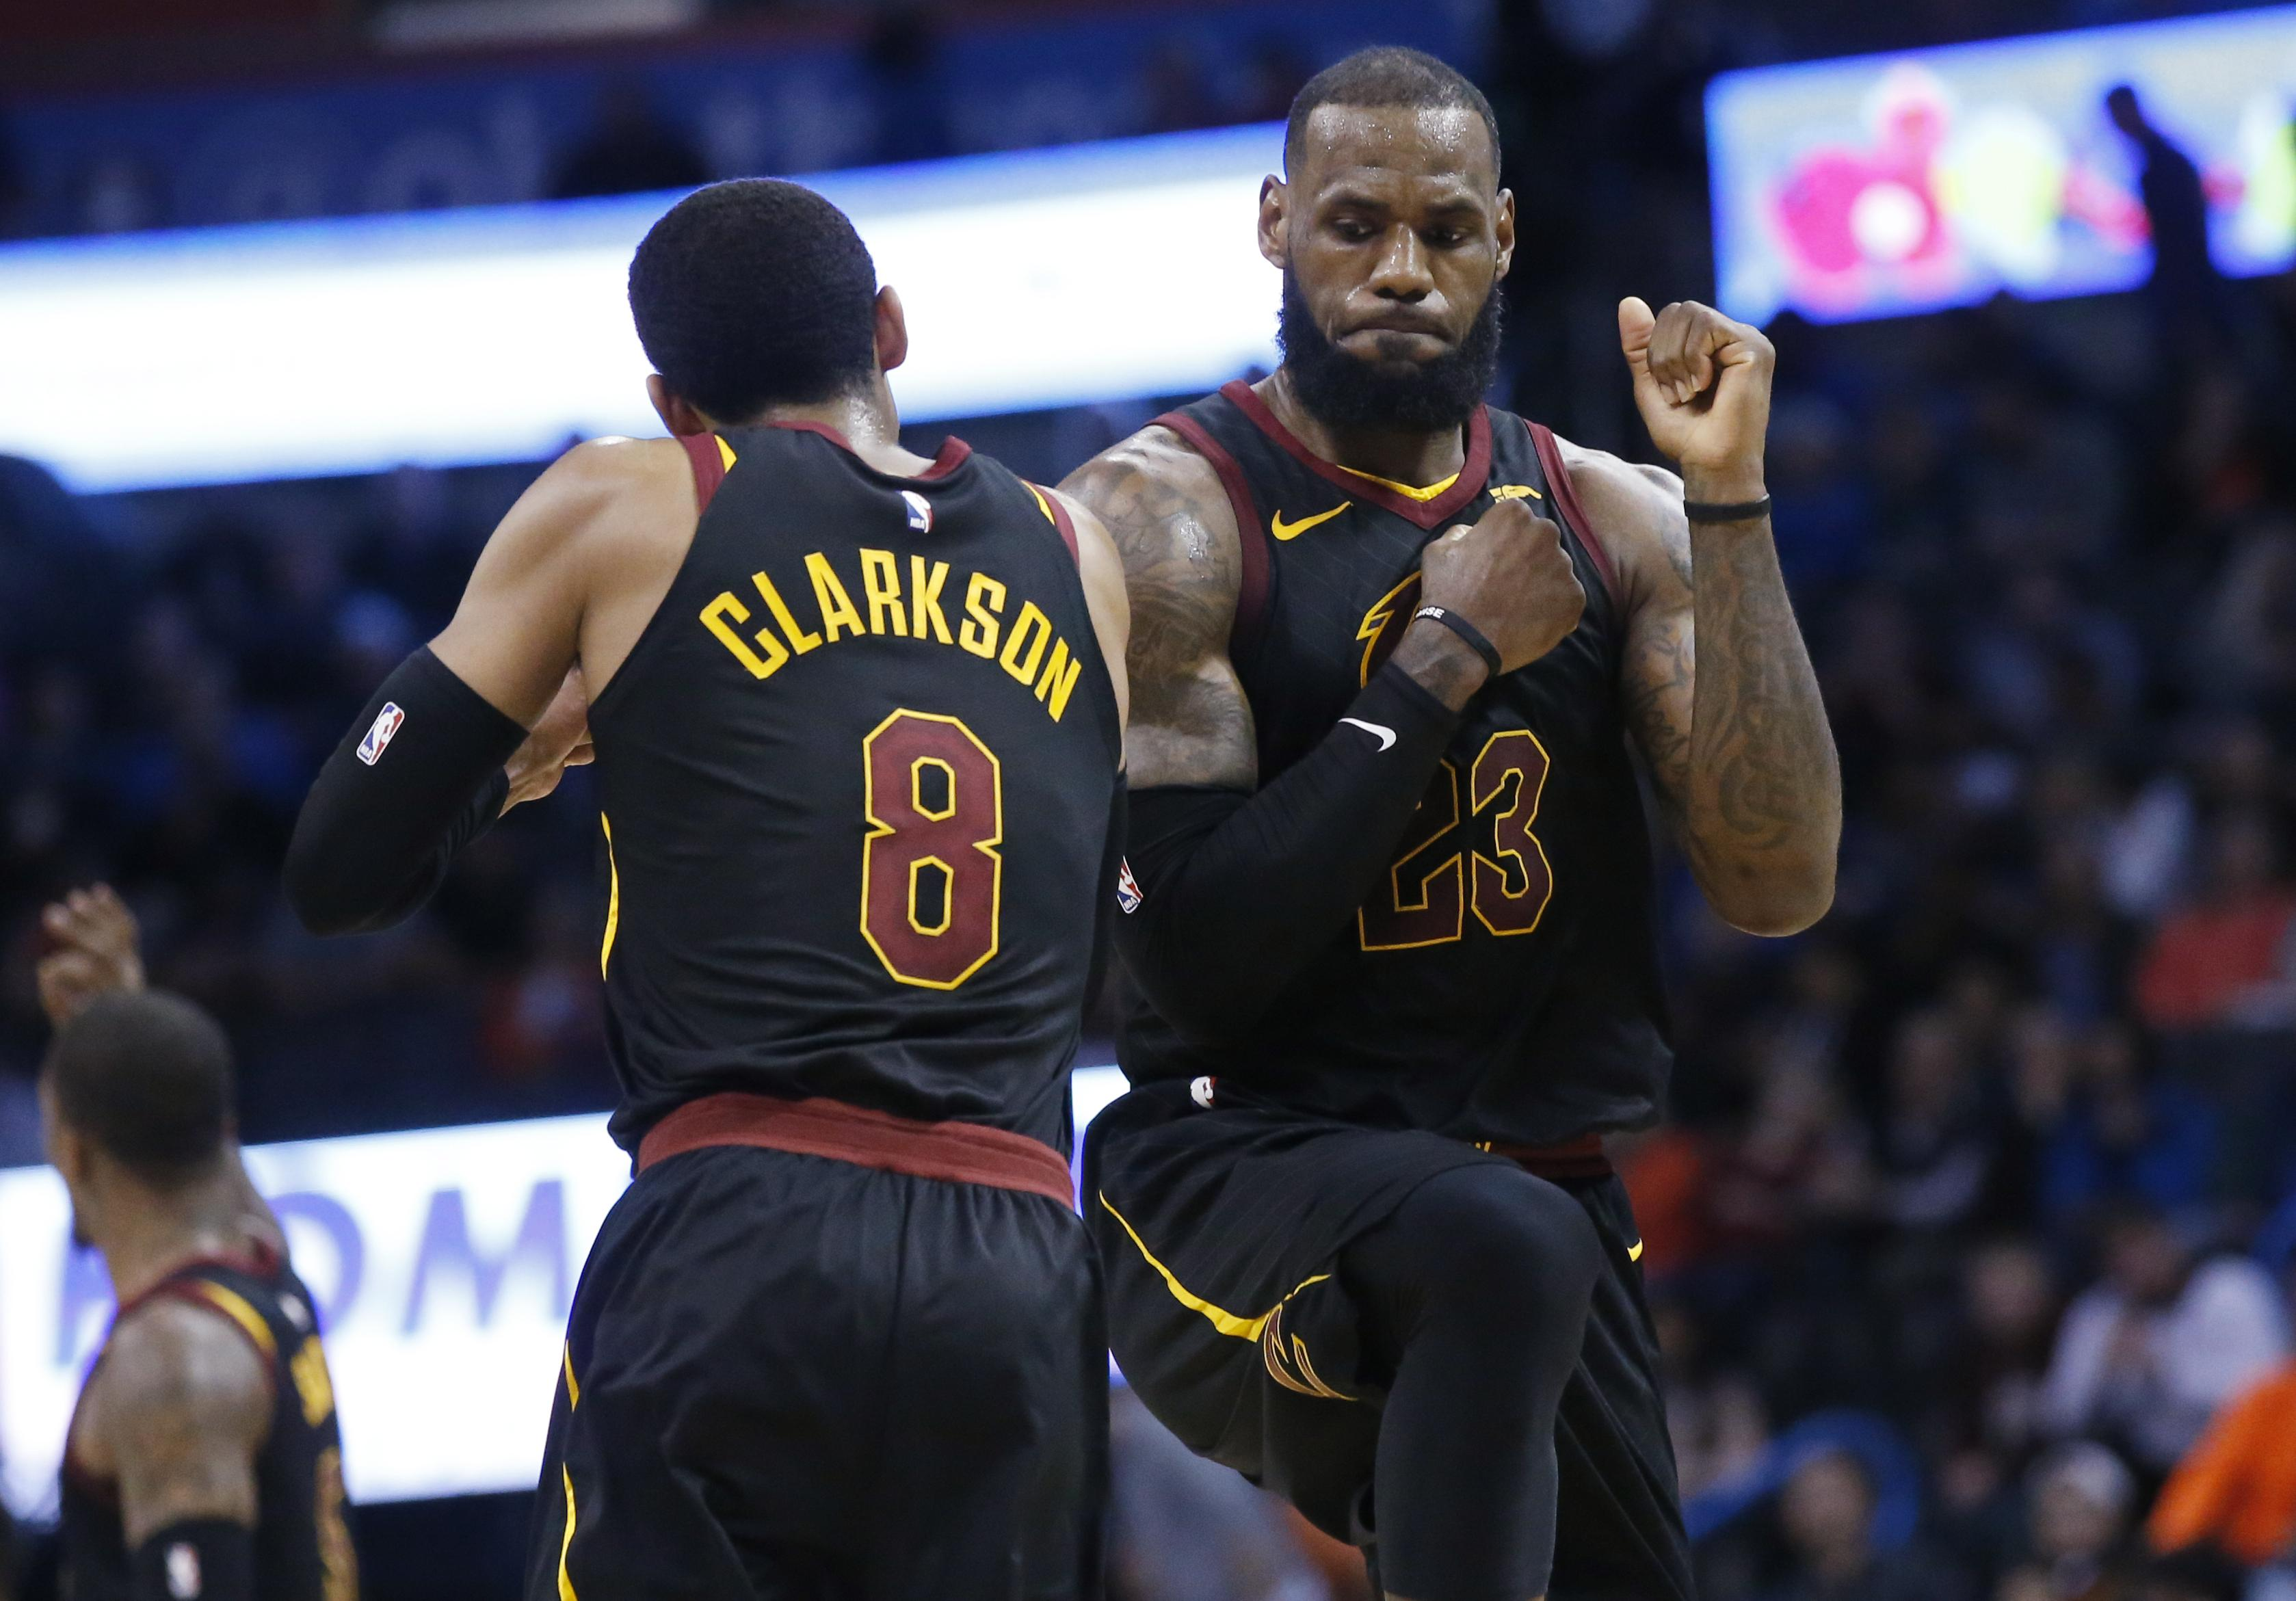 68c78dc628ae Cleveland Cavaliers forward LeBron James (23) celebrates with teammate  Jordan Clarkson during the second